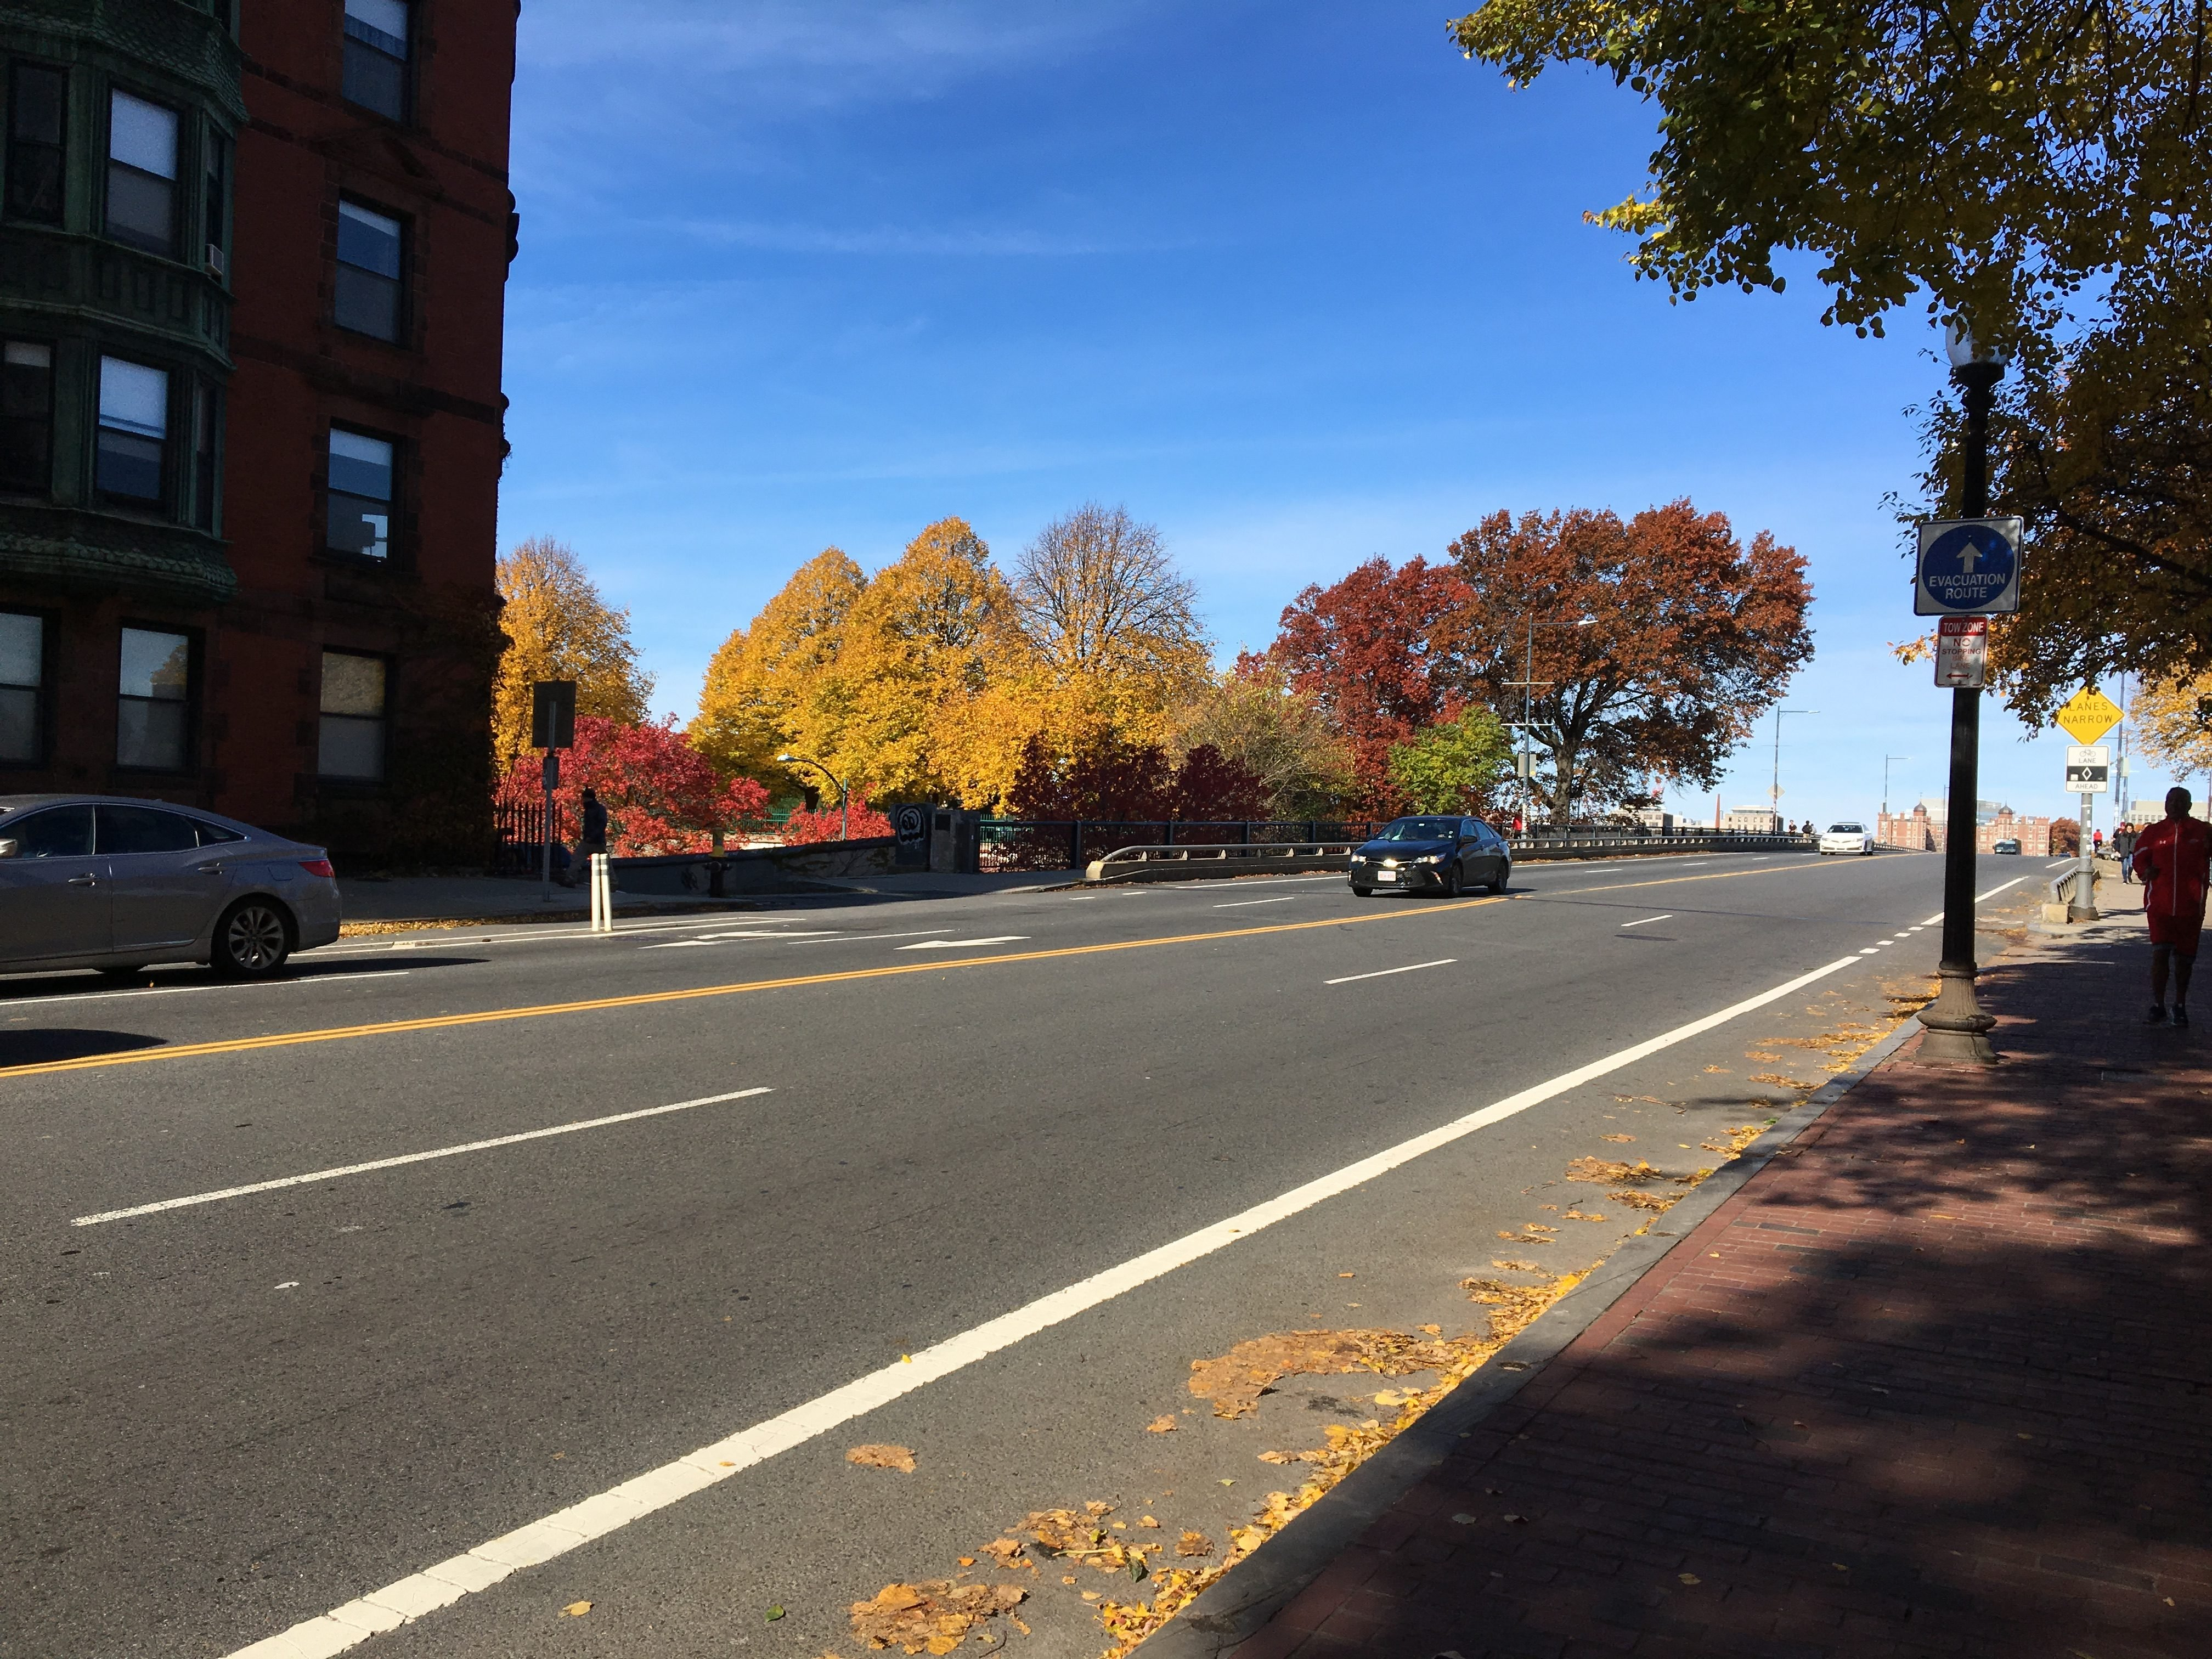 A road in Boston. Visible are part of a Boston-typical red brick building, a blue sky, and various brightly-coloured trees.